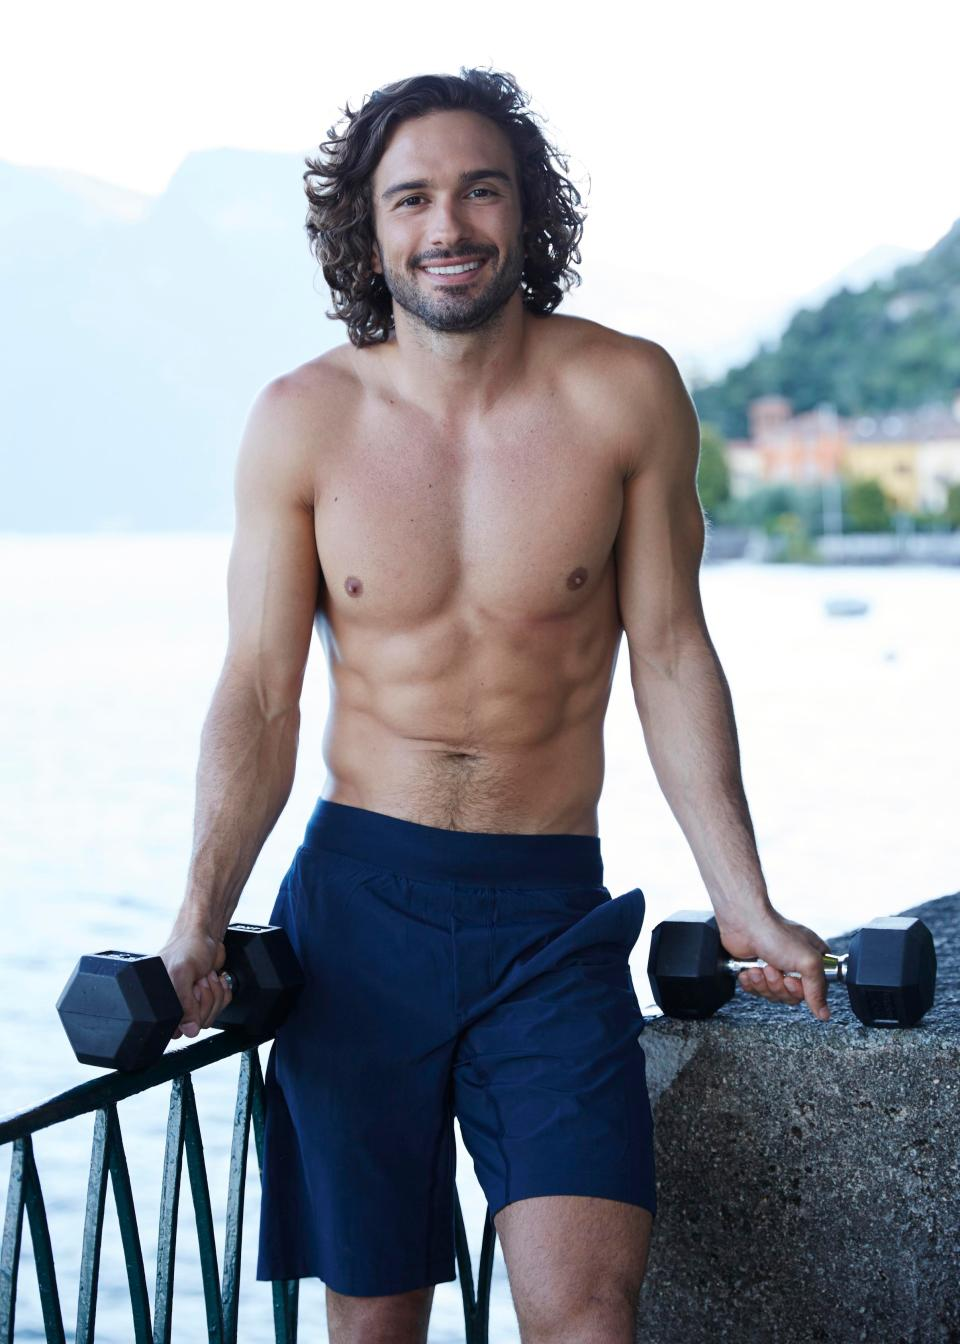 Fitness guru Joe Wicks has two million followers on social media